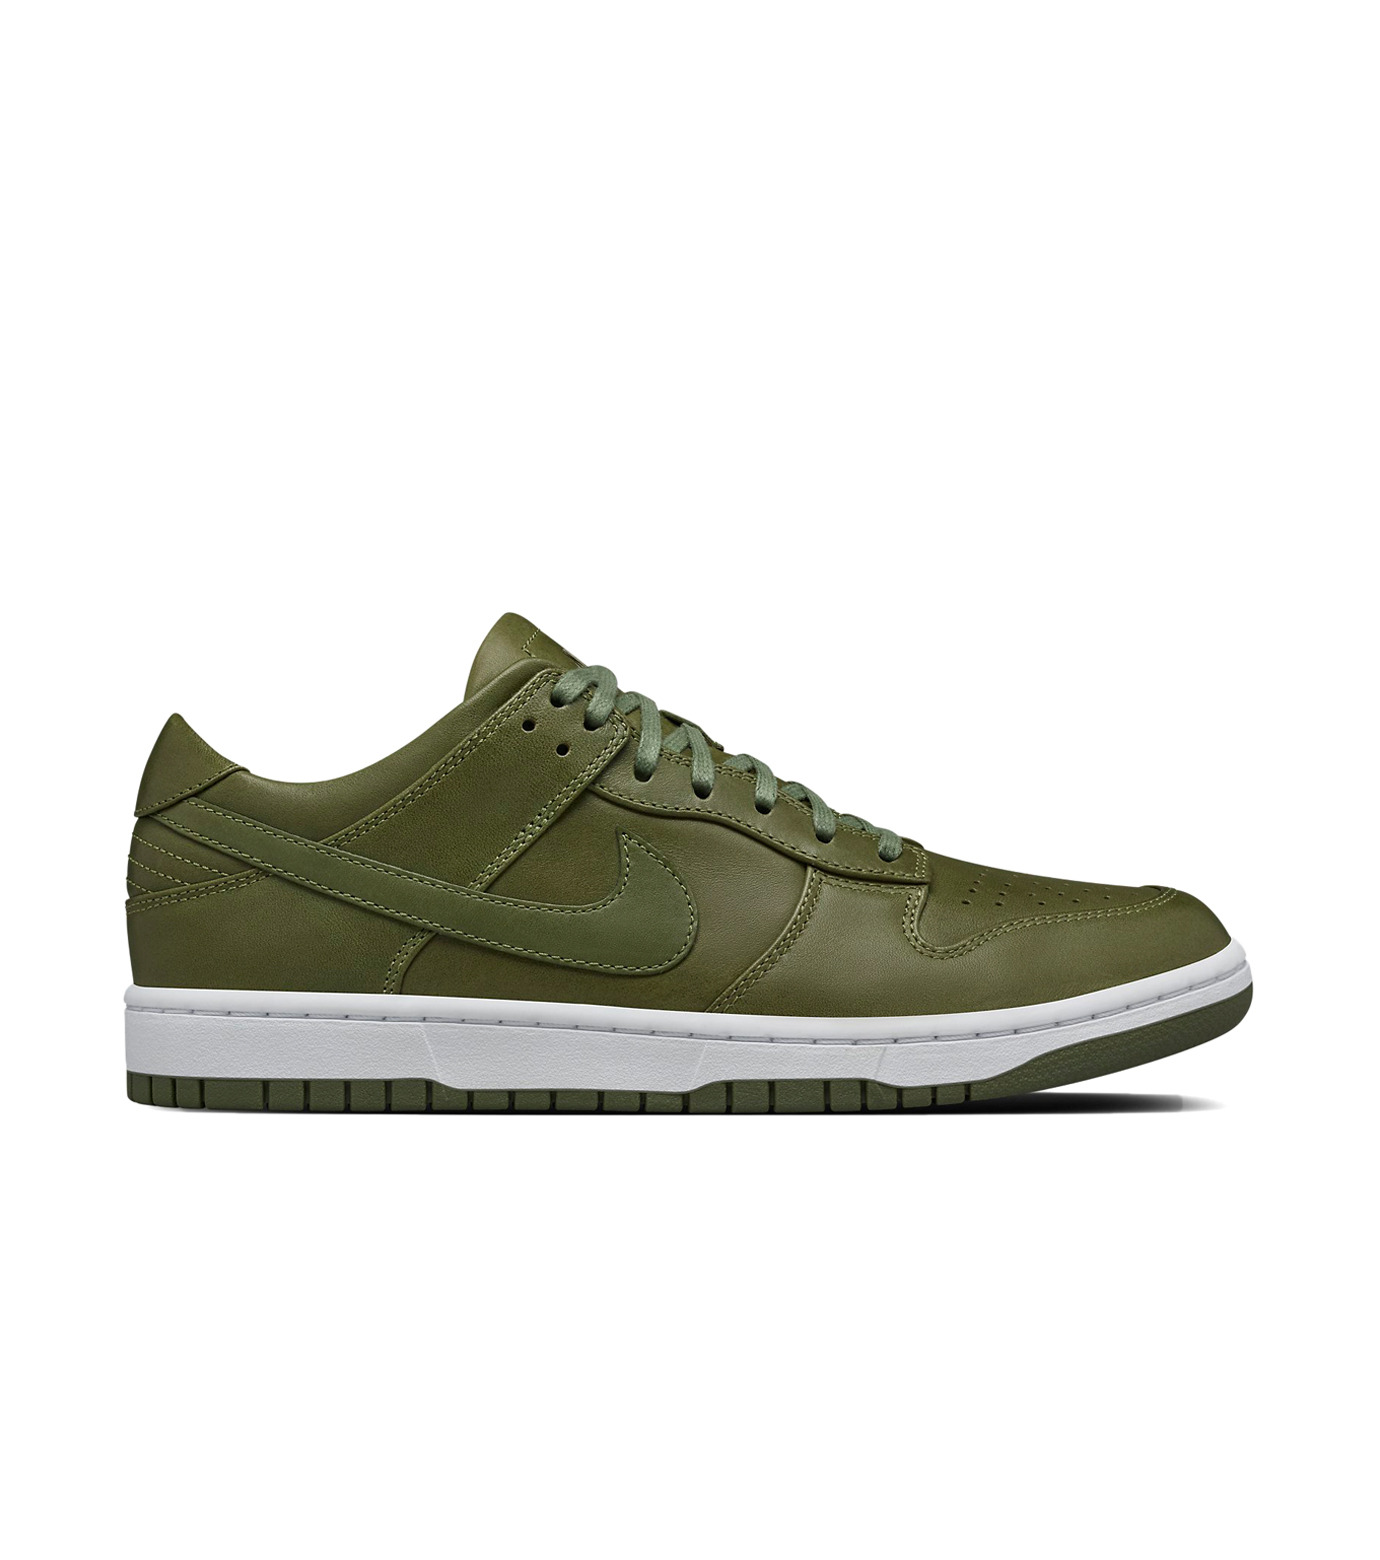 NIKE(ナイキ)のLAB DUNK LUX LOW-GRAY(シューズ/shoes)-857587-300-11 拡大詳細画像1